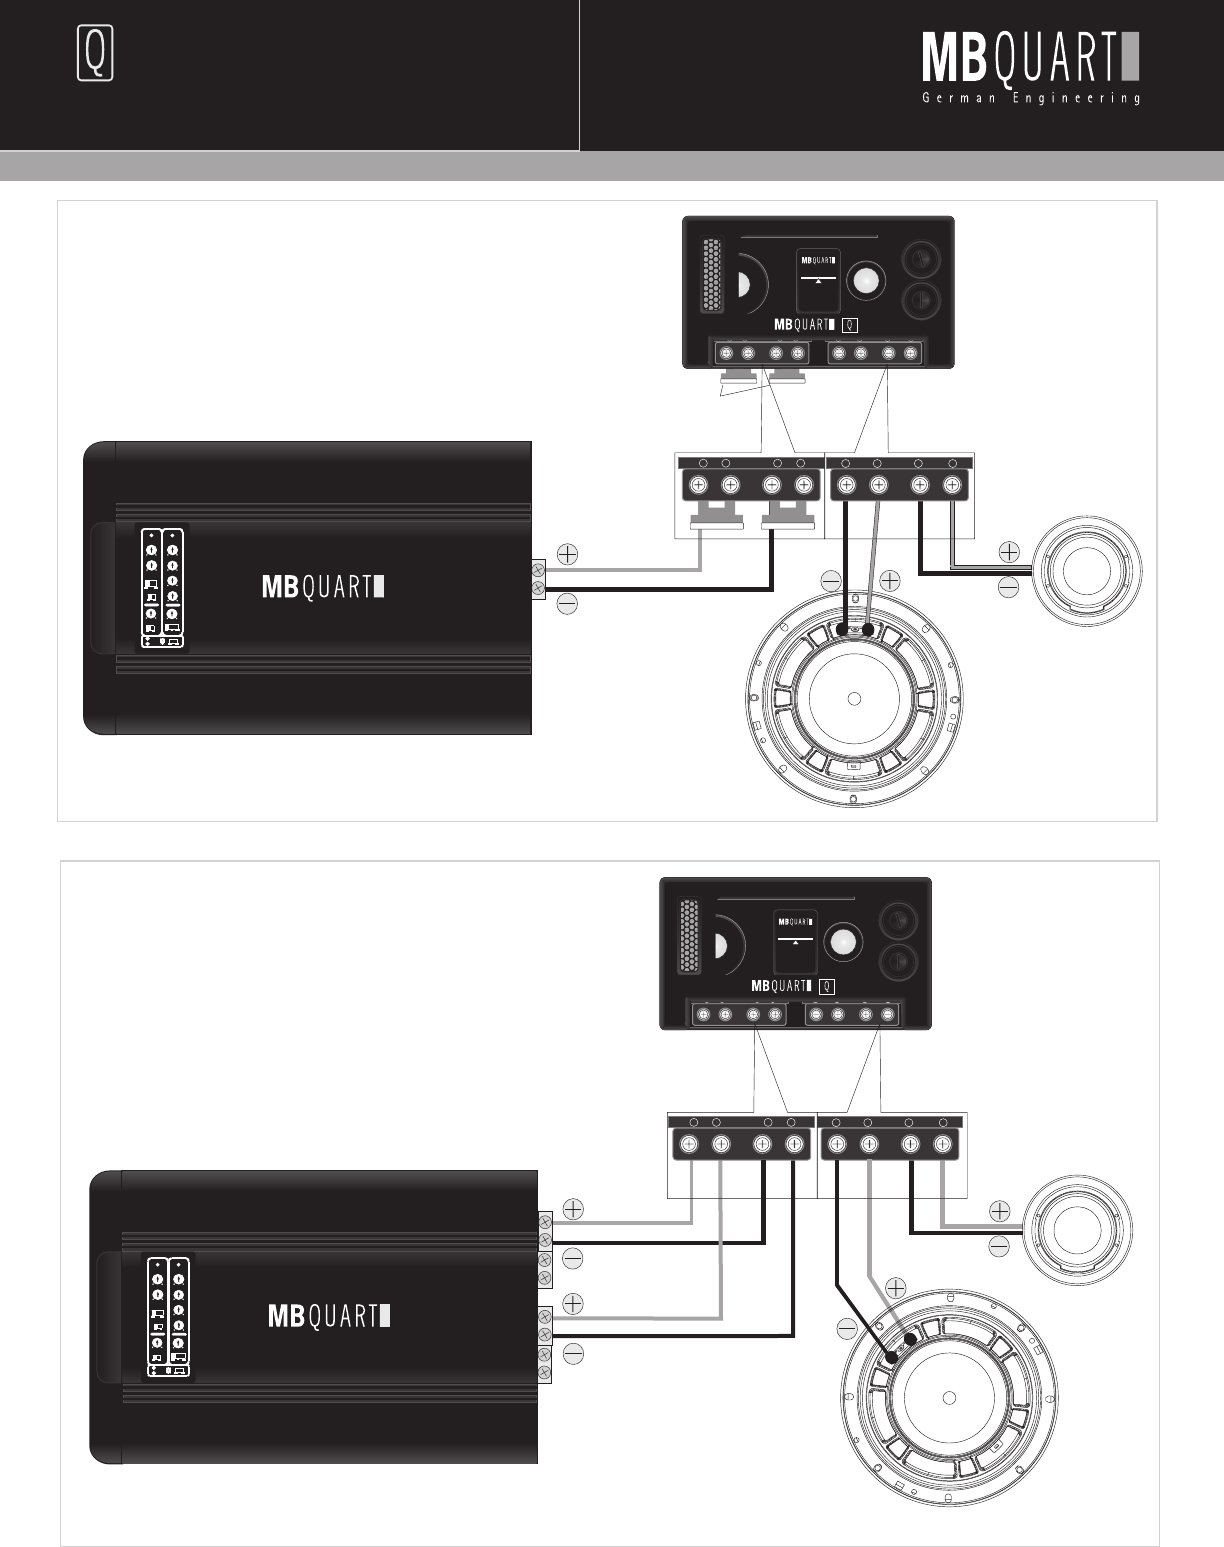 278f9fa9 aaa4 4c06 9635 b8727ef35810 bg5 page 5 of mb quart car stereo system qs216 user guide polaris mb quart wiring diagram at bayanpartner.co